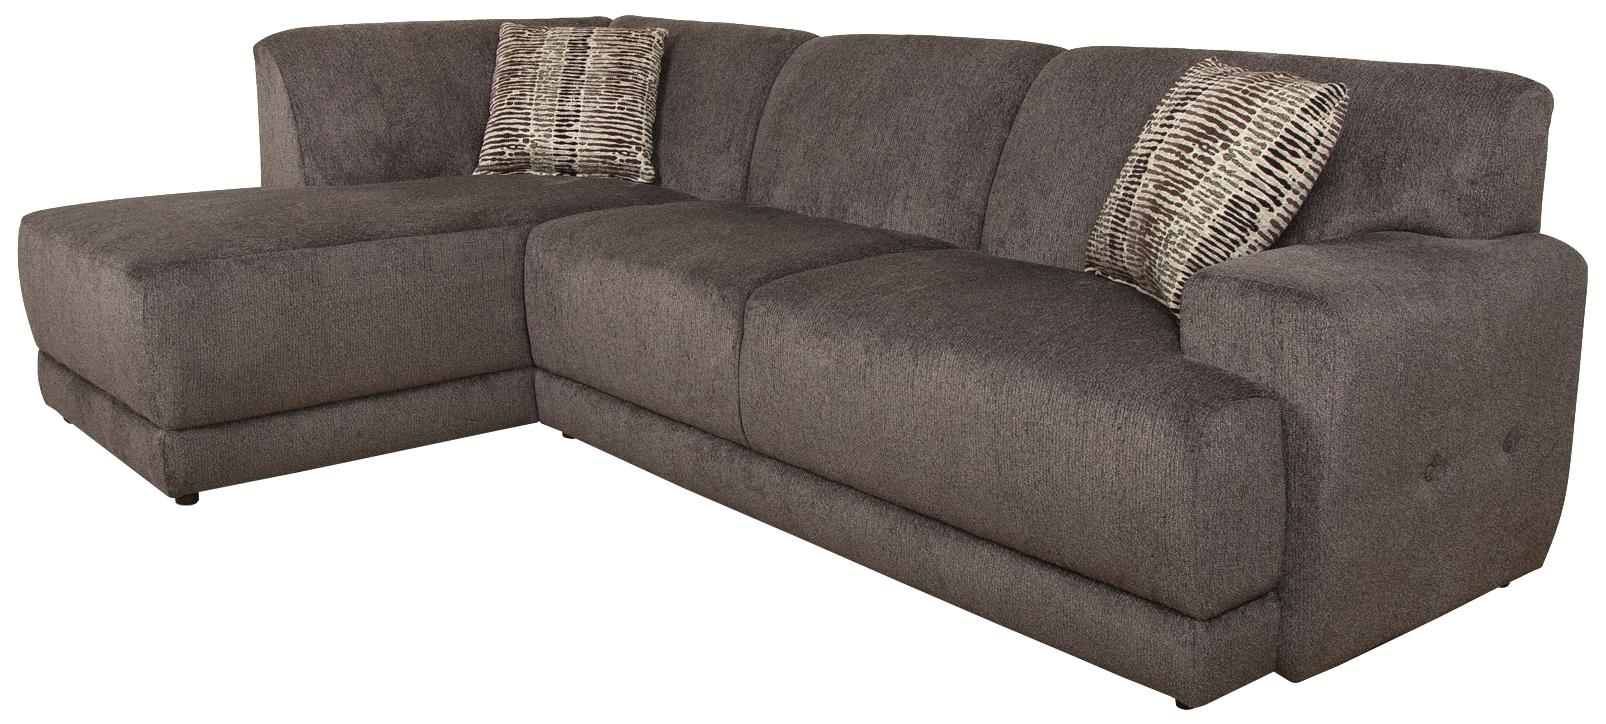 England cole contemporary sectional sofa with left facing for Sectional sofas left facing chaise